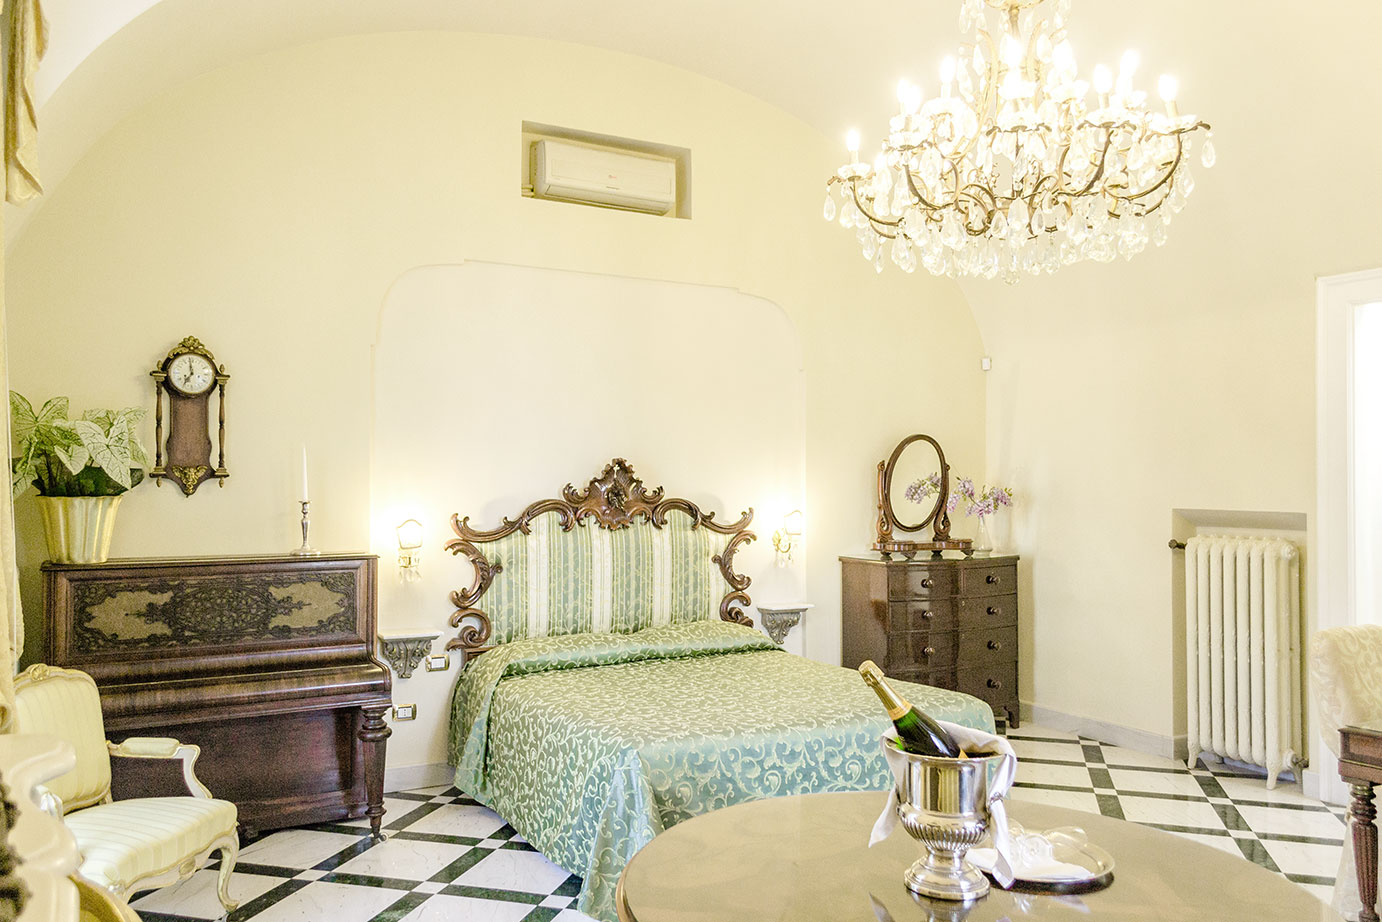 Caruso Room - Room in Sorrento